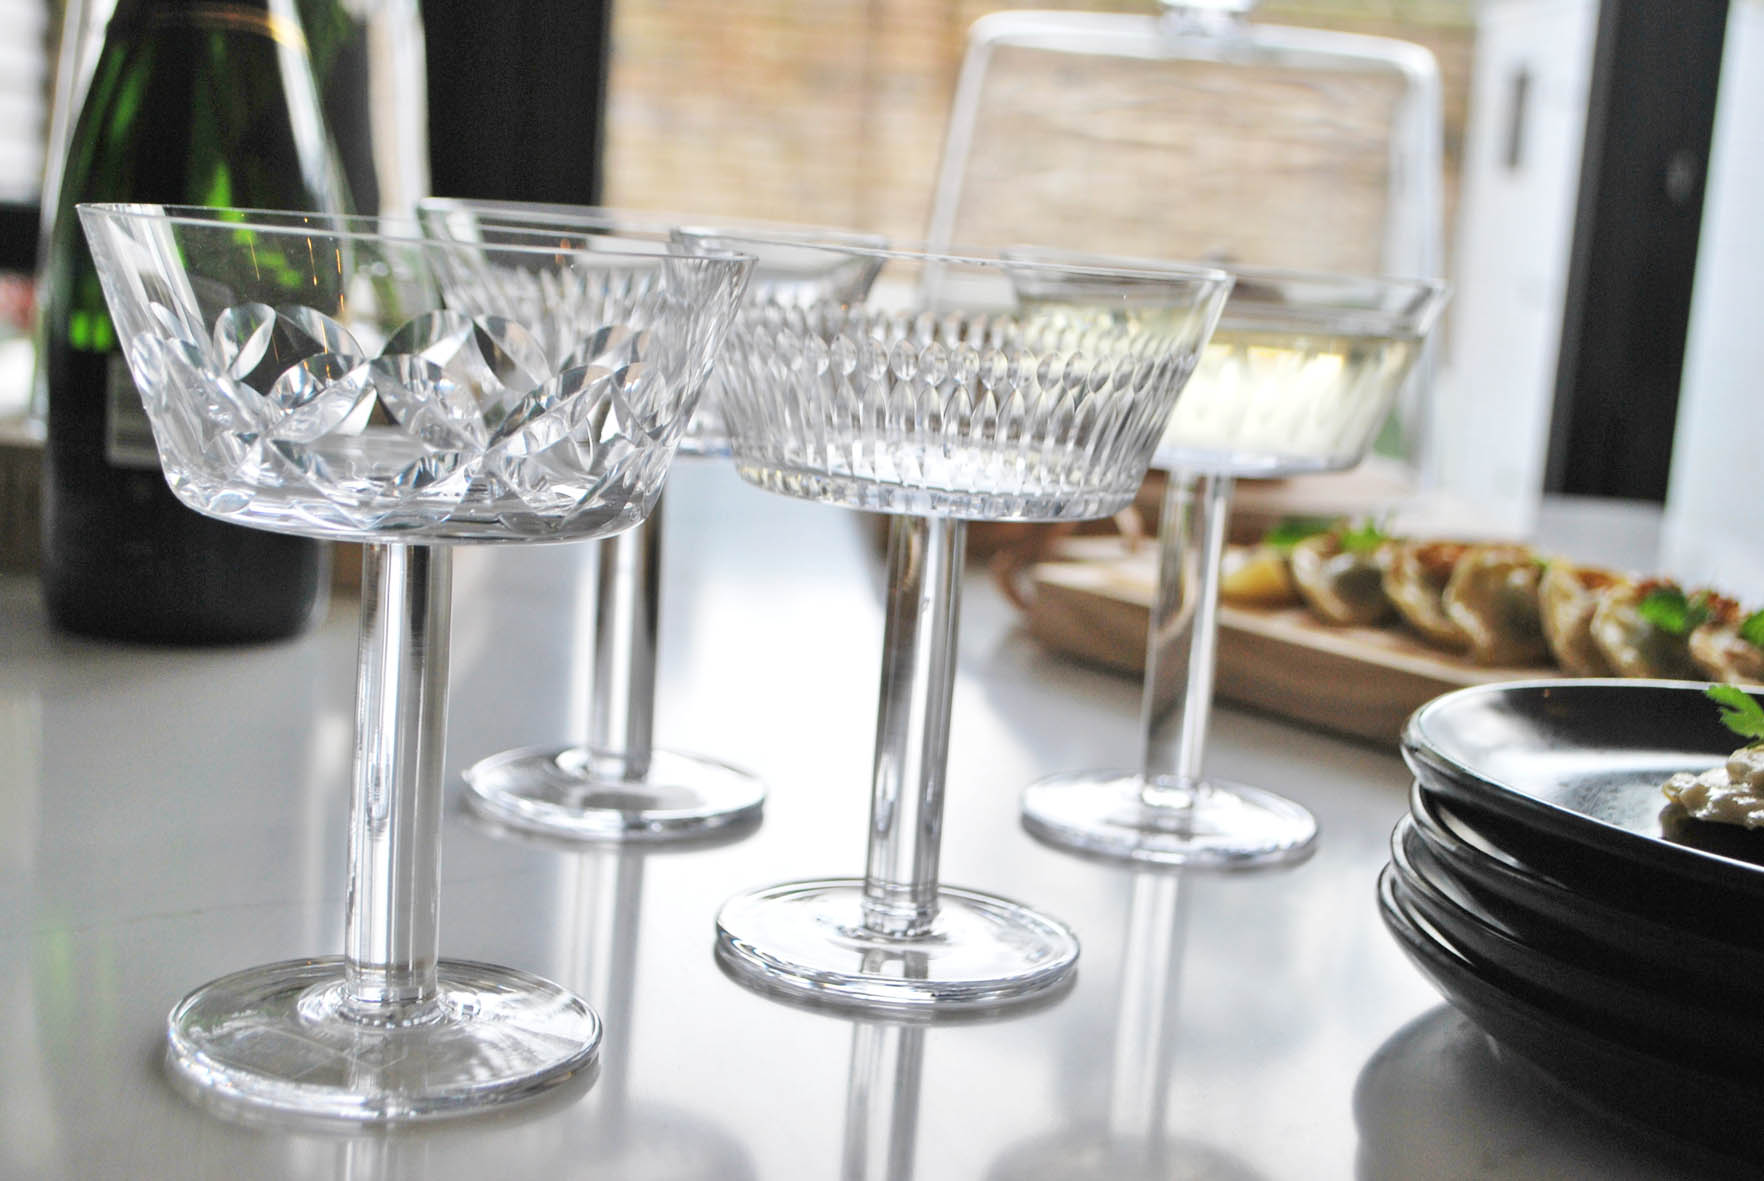 A great detail is that every champagne glass in the set of four has a different cut glass pattern.